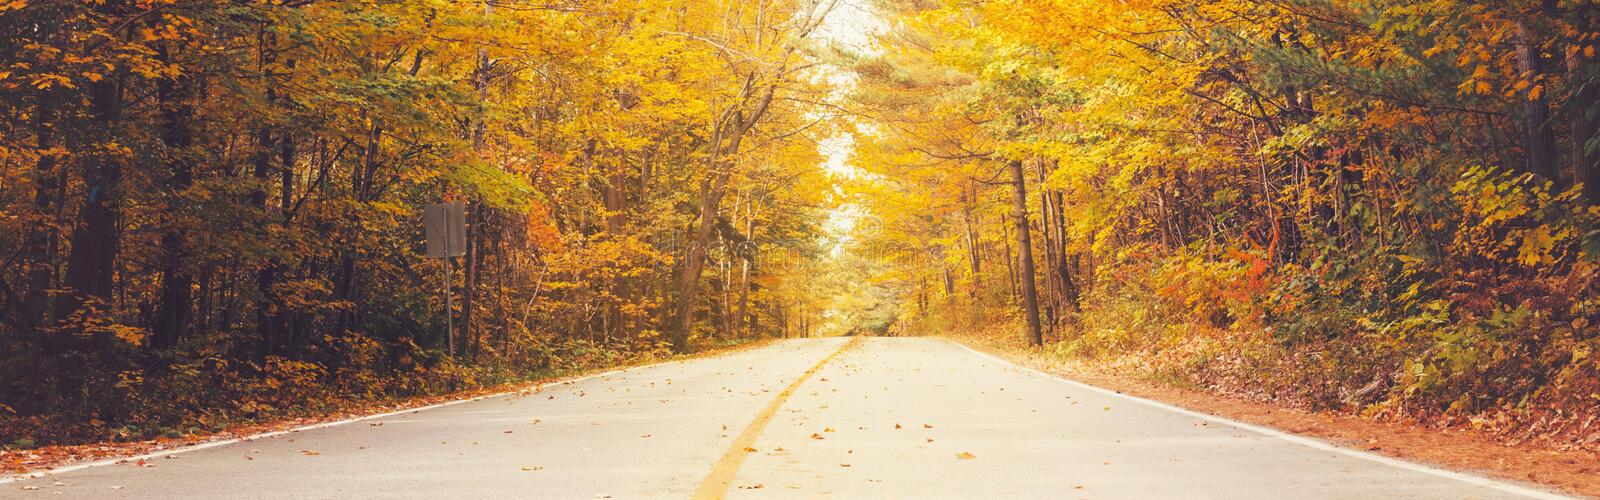 Empty road street in colorful autumn forest park with yellow orange red leaves on trees. Beautiful fall season outdoors. stock photo